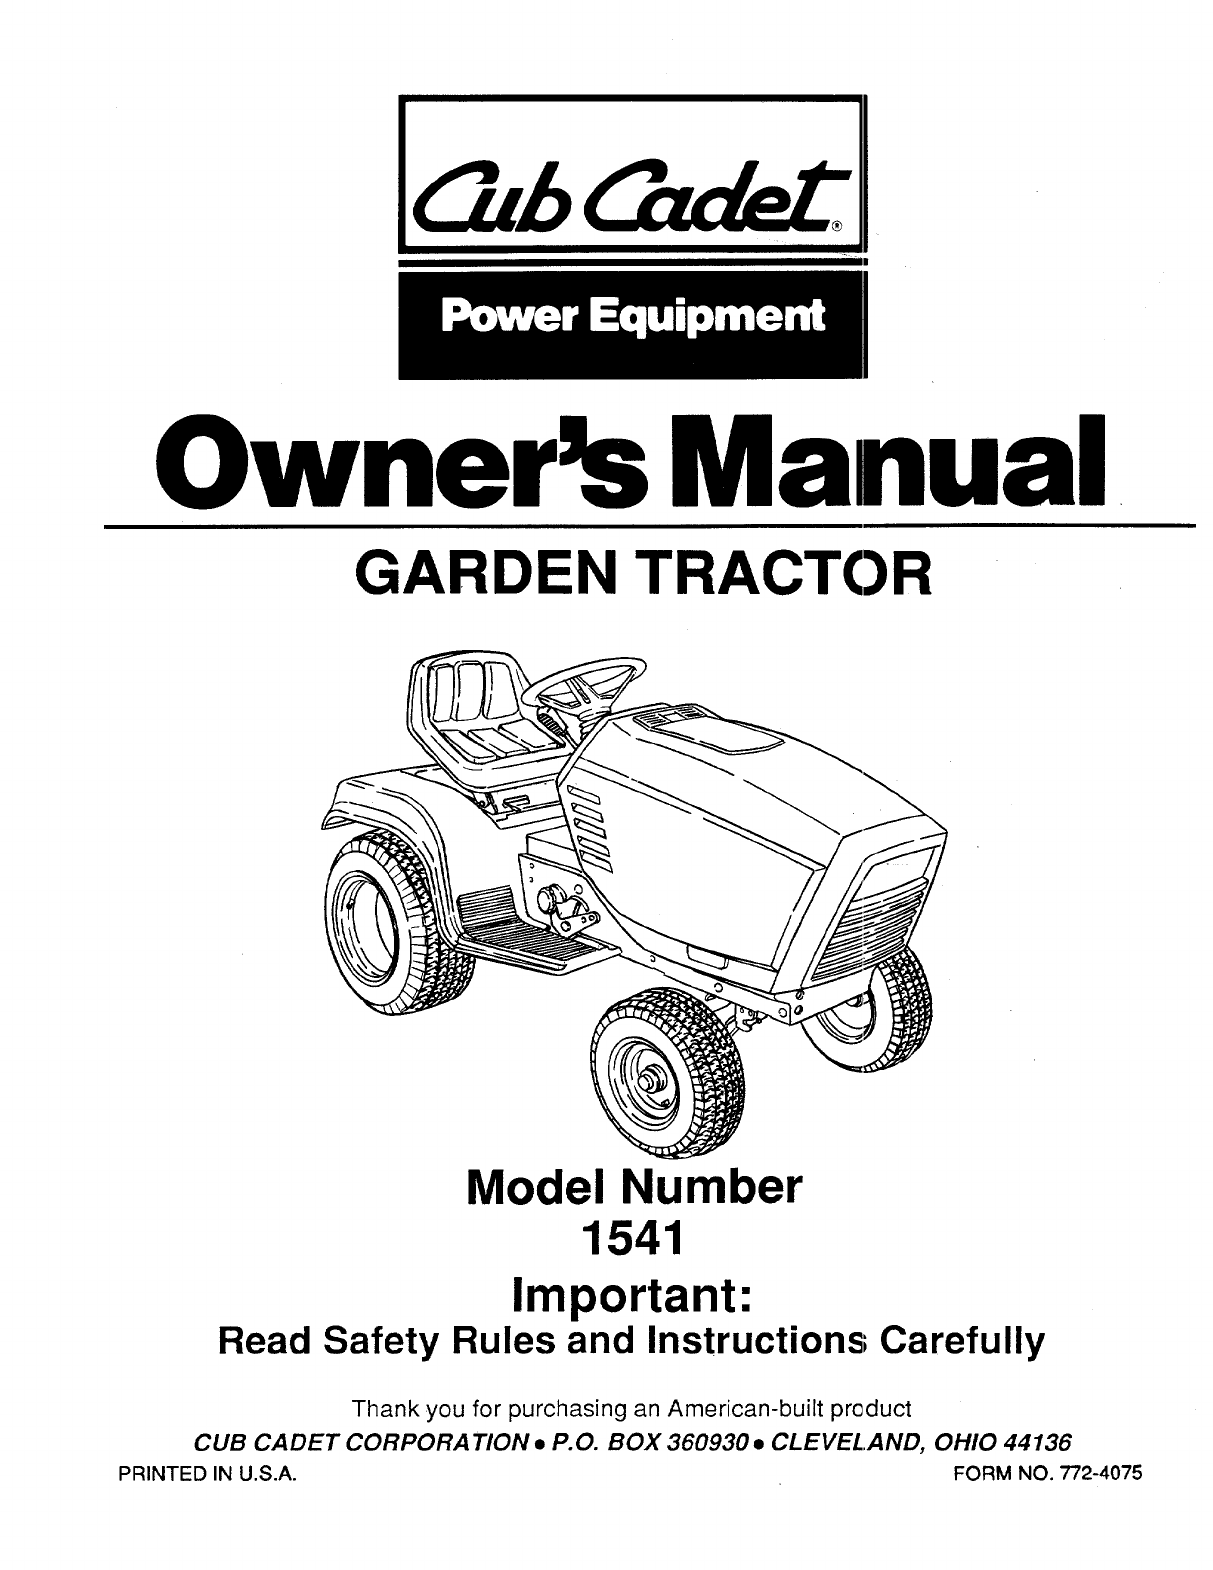 cub cadet lawn mower user guide manualsonline com next